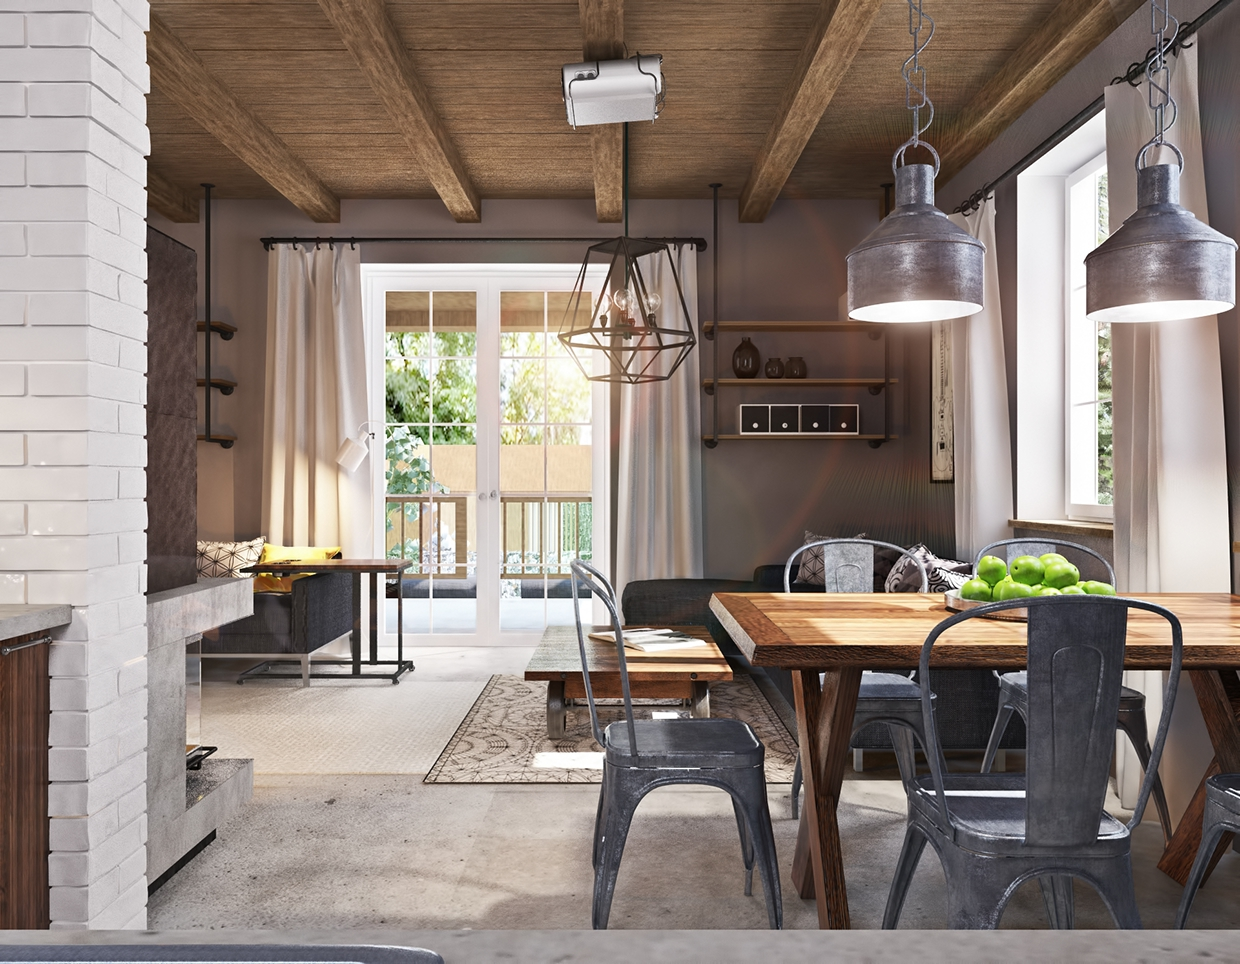 Industrial Studio Apartment emejing industrial studio apartment gallery - best image 3d home